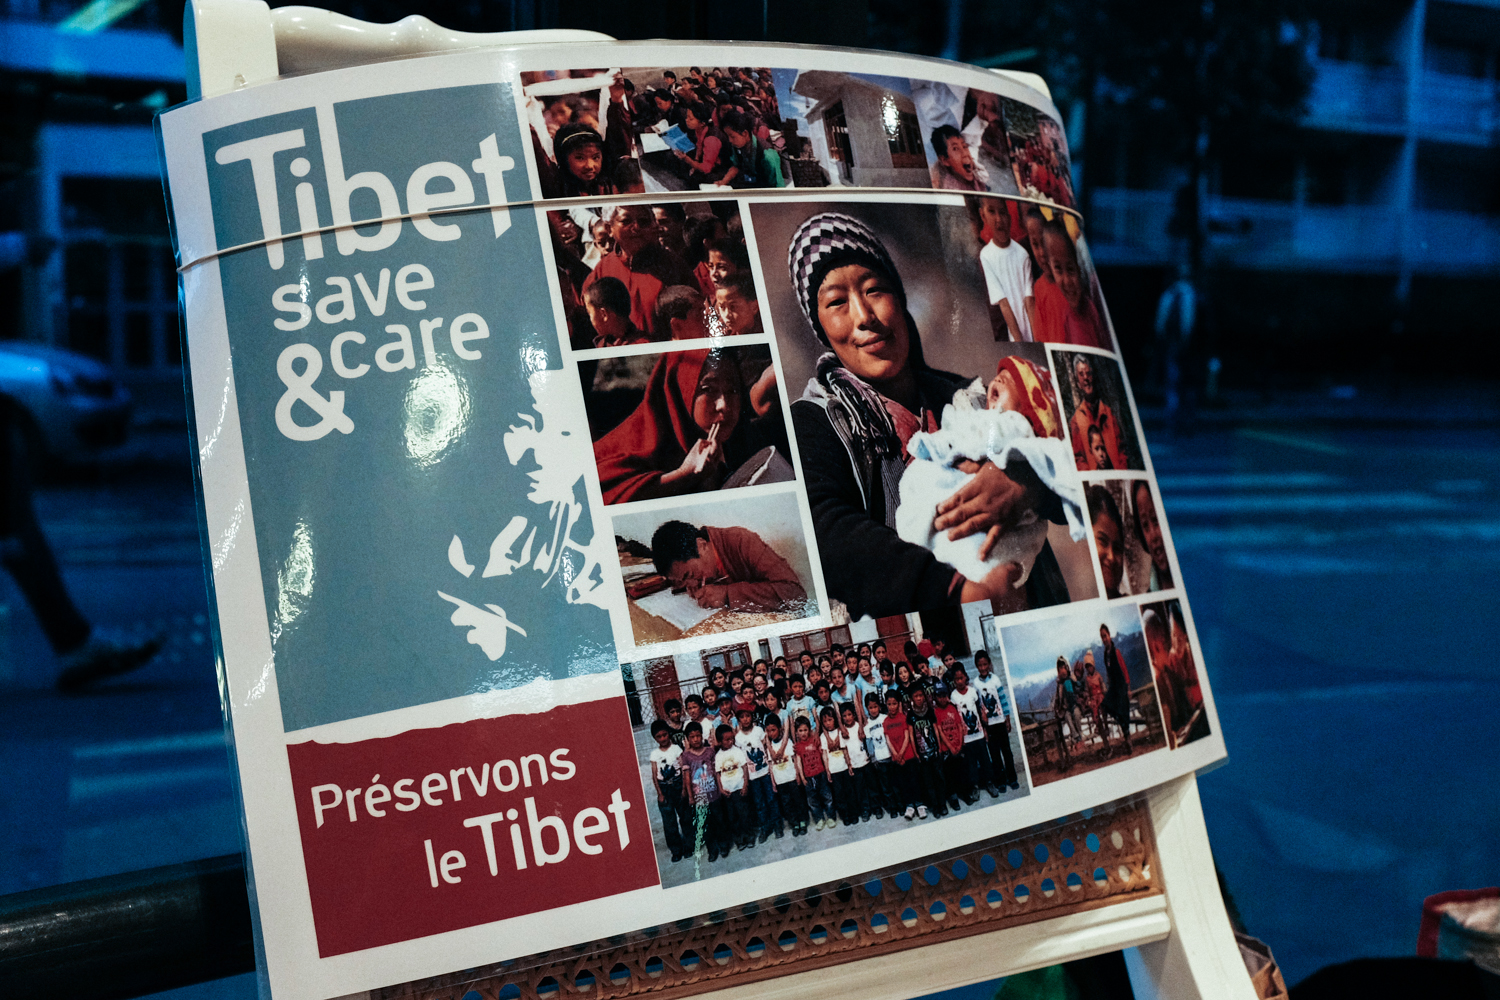 11 - tibet save and care - 10 octobre 2015-4.jpg